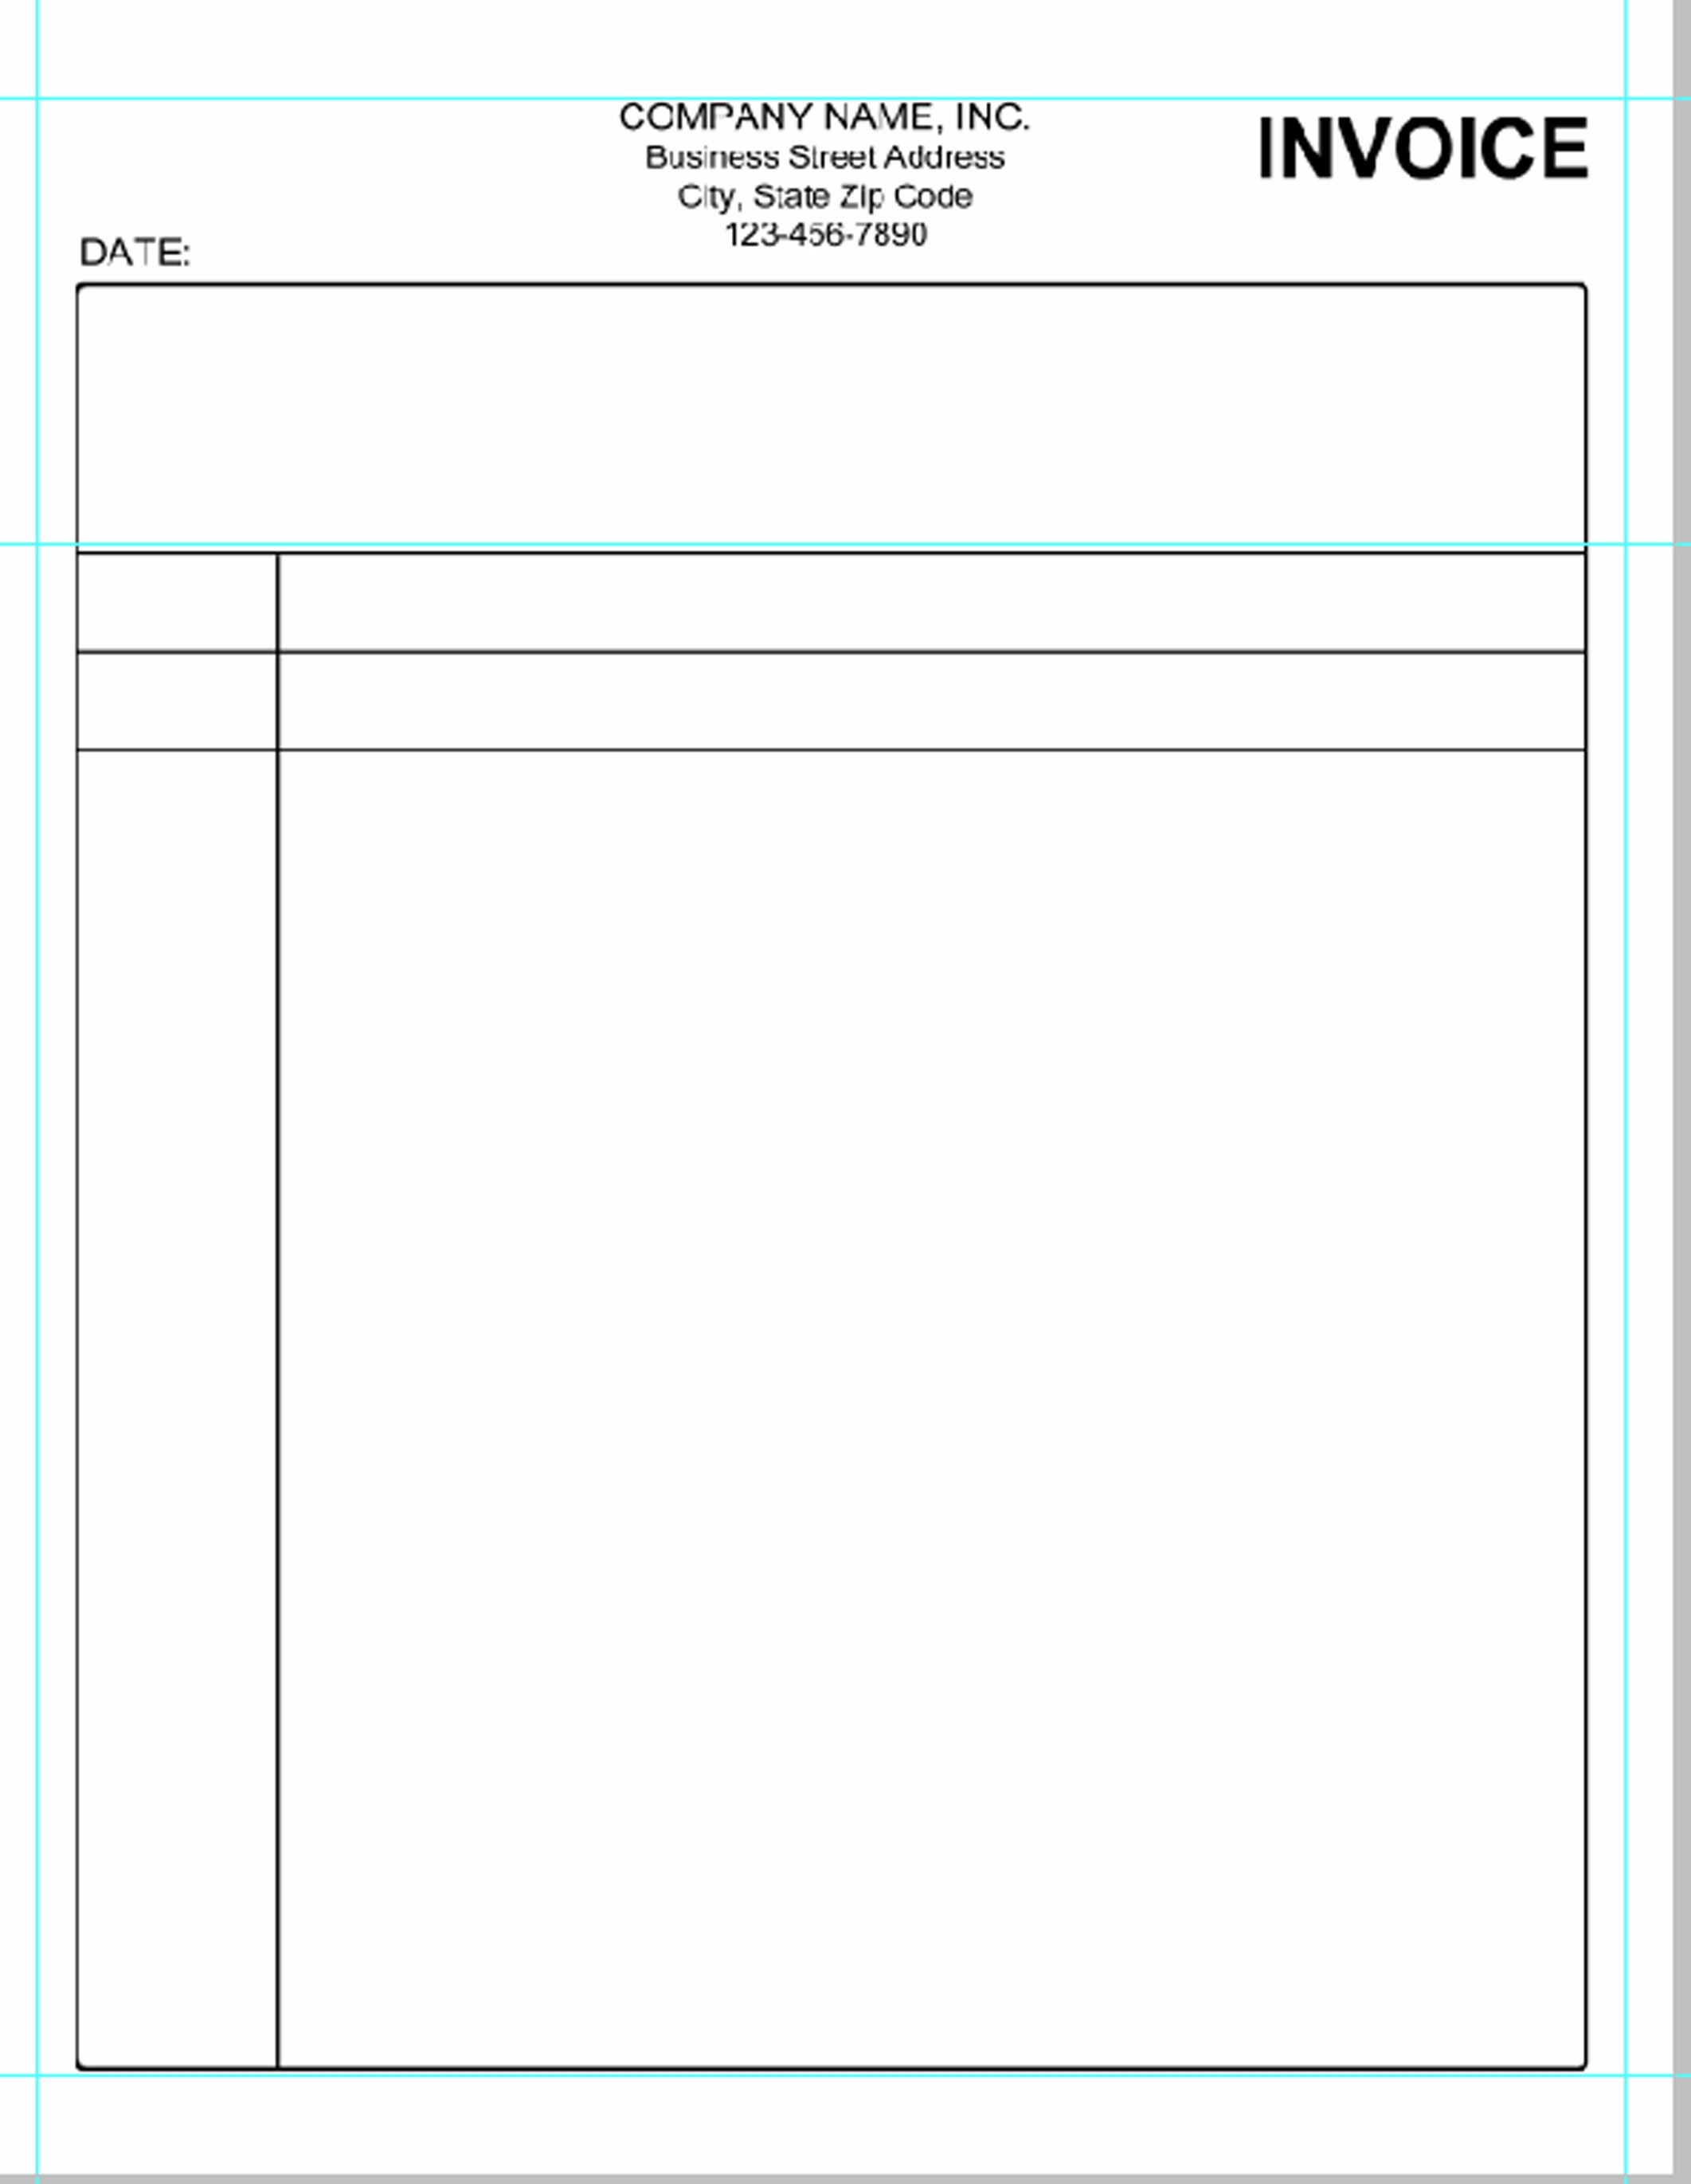 invoice sample word photograph 19 blank invoice templates microsoft